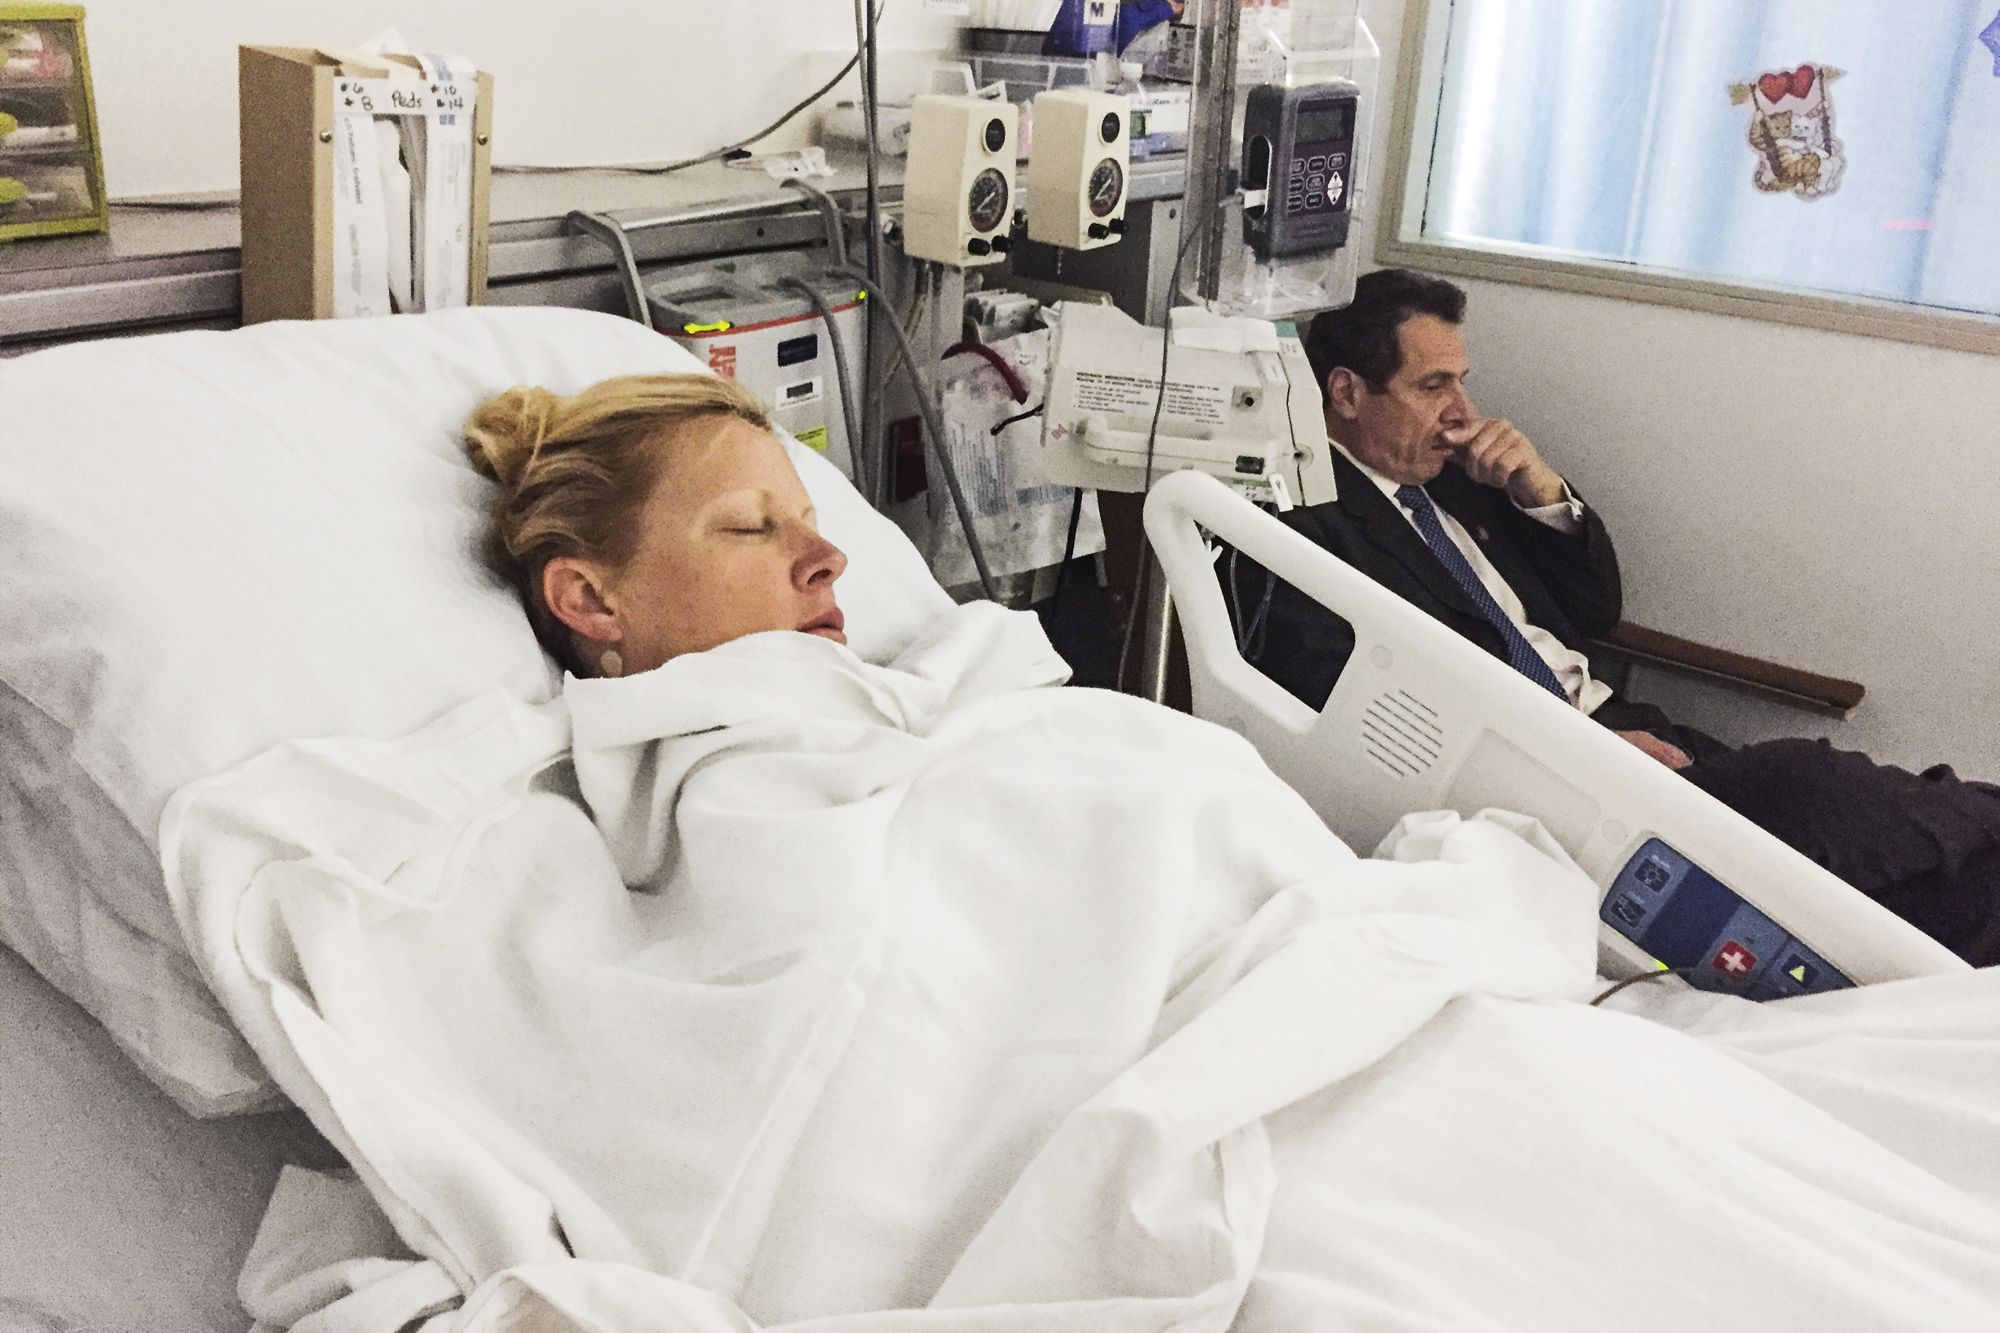 sandra lee gives us a deeper look into her breast cancer battle and